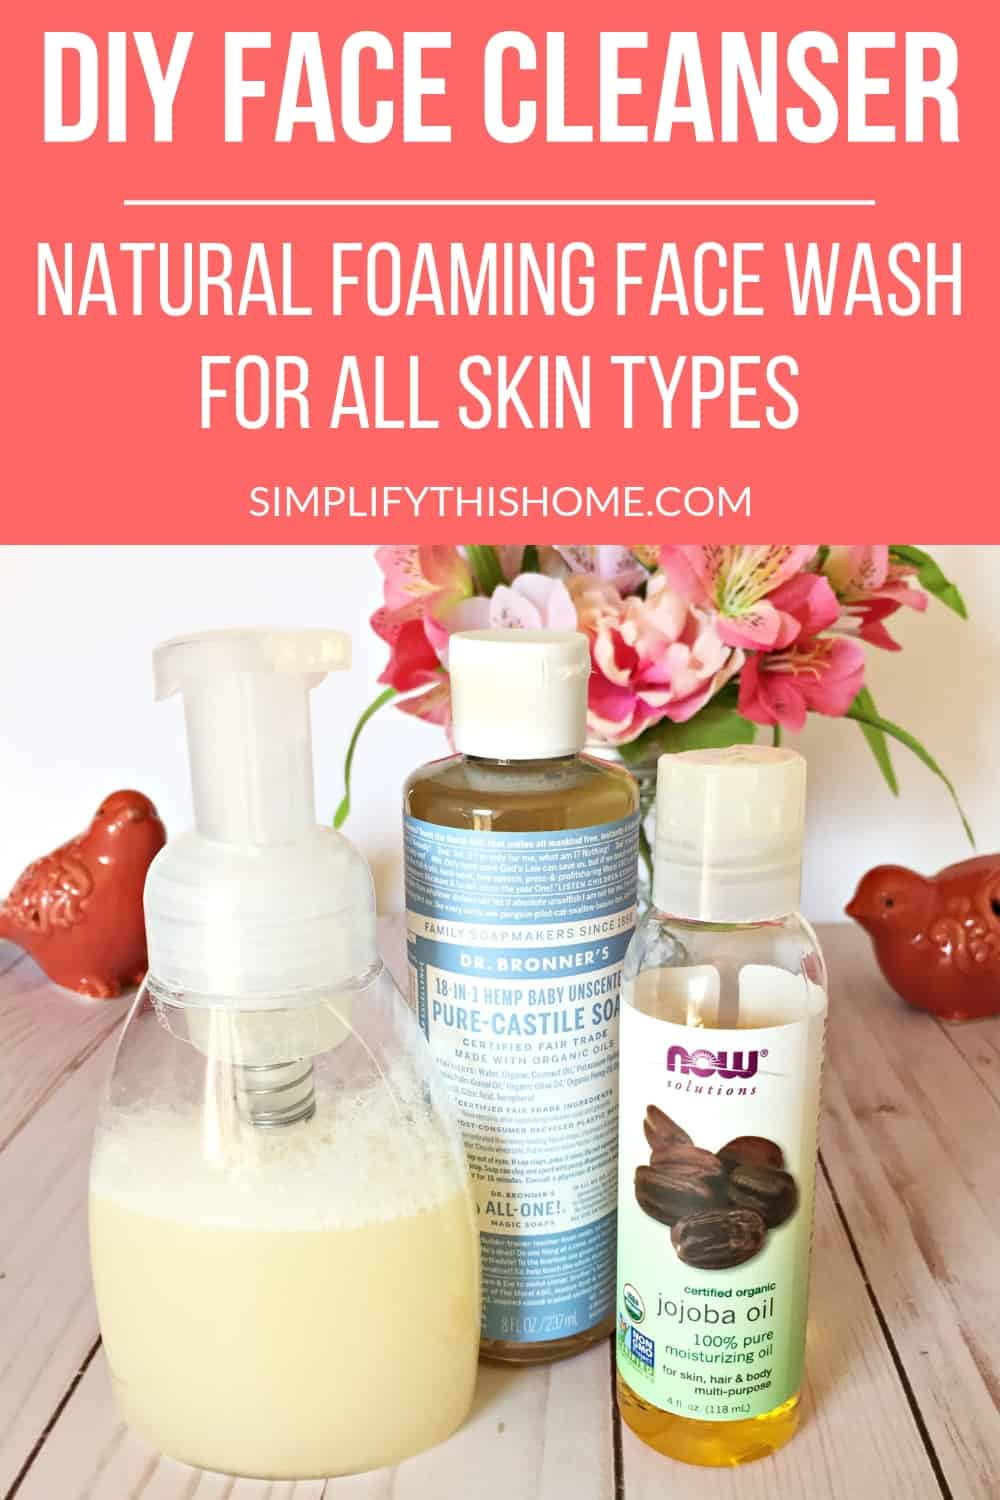 Kick your old face cleanser to the curb and make this DIY face cleanser instead! This natural foaming face wash is perfect for all skin types, even the most sensitive skin! #naturalbeautyproducts #naturalskincare #diyskincare #diybeautyrecipes